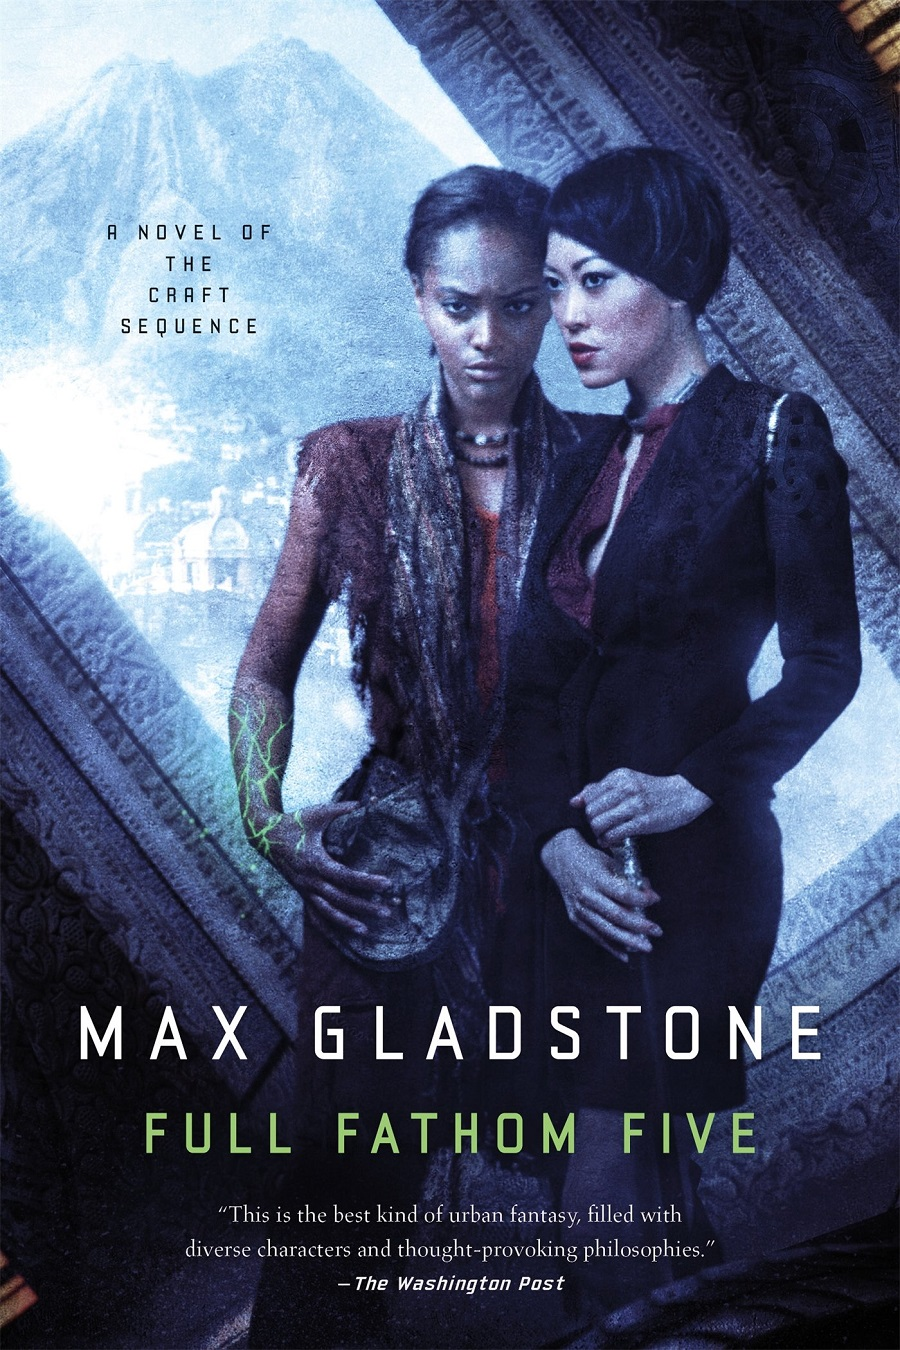 Full Fathom Five: A Novel of the Craft Sequence by Max Gladstone